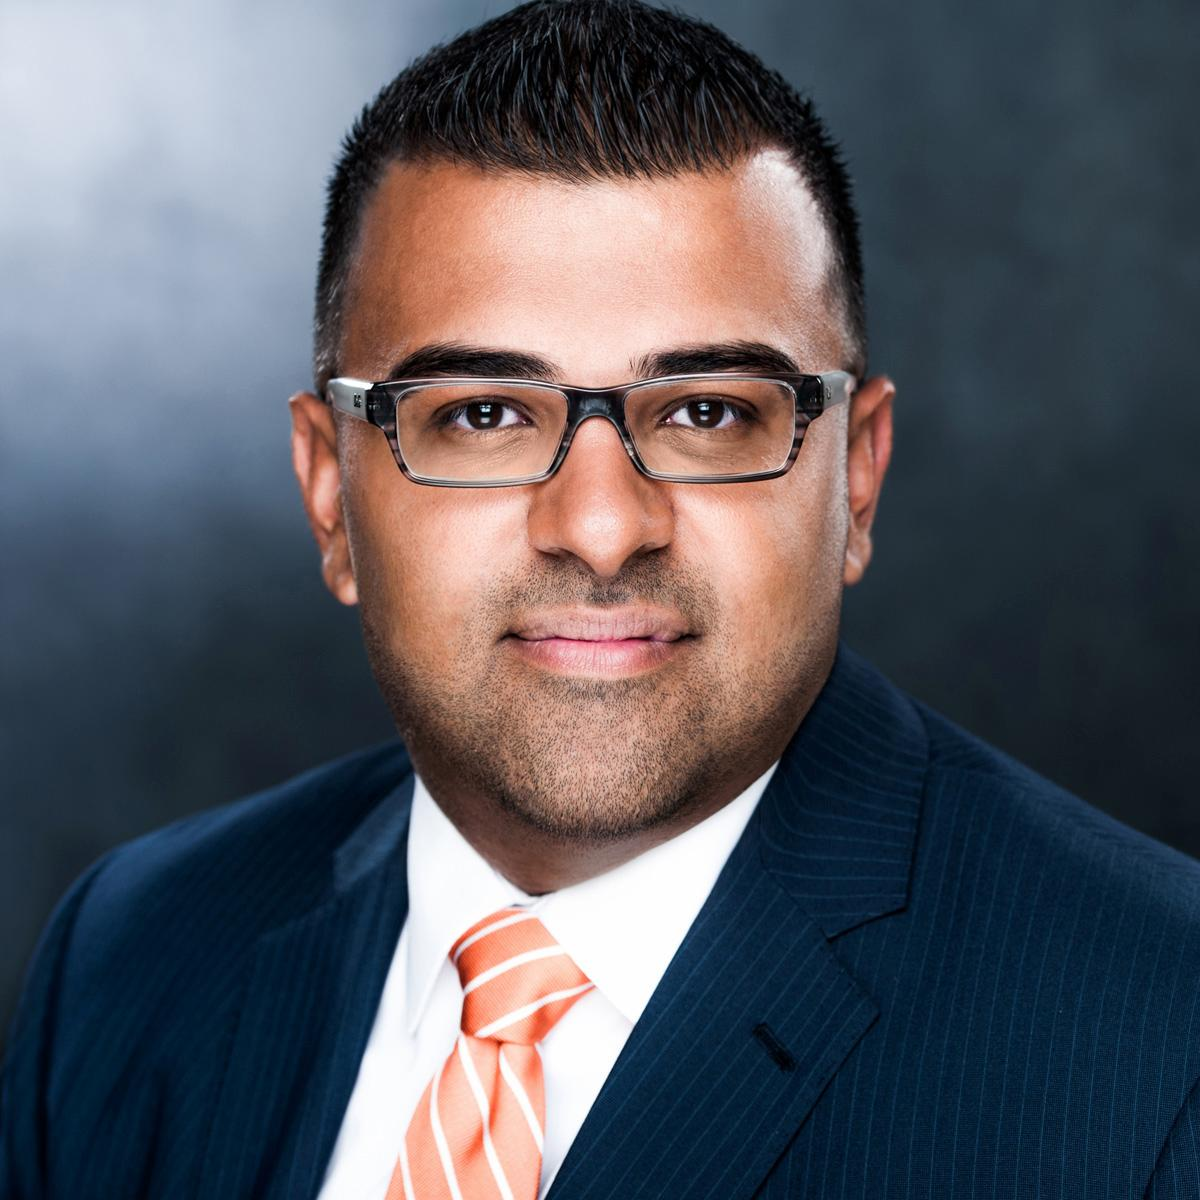 MAYANK S. KAPOOR  Your Financial Professional & Insurance Agent